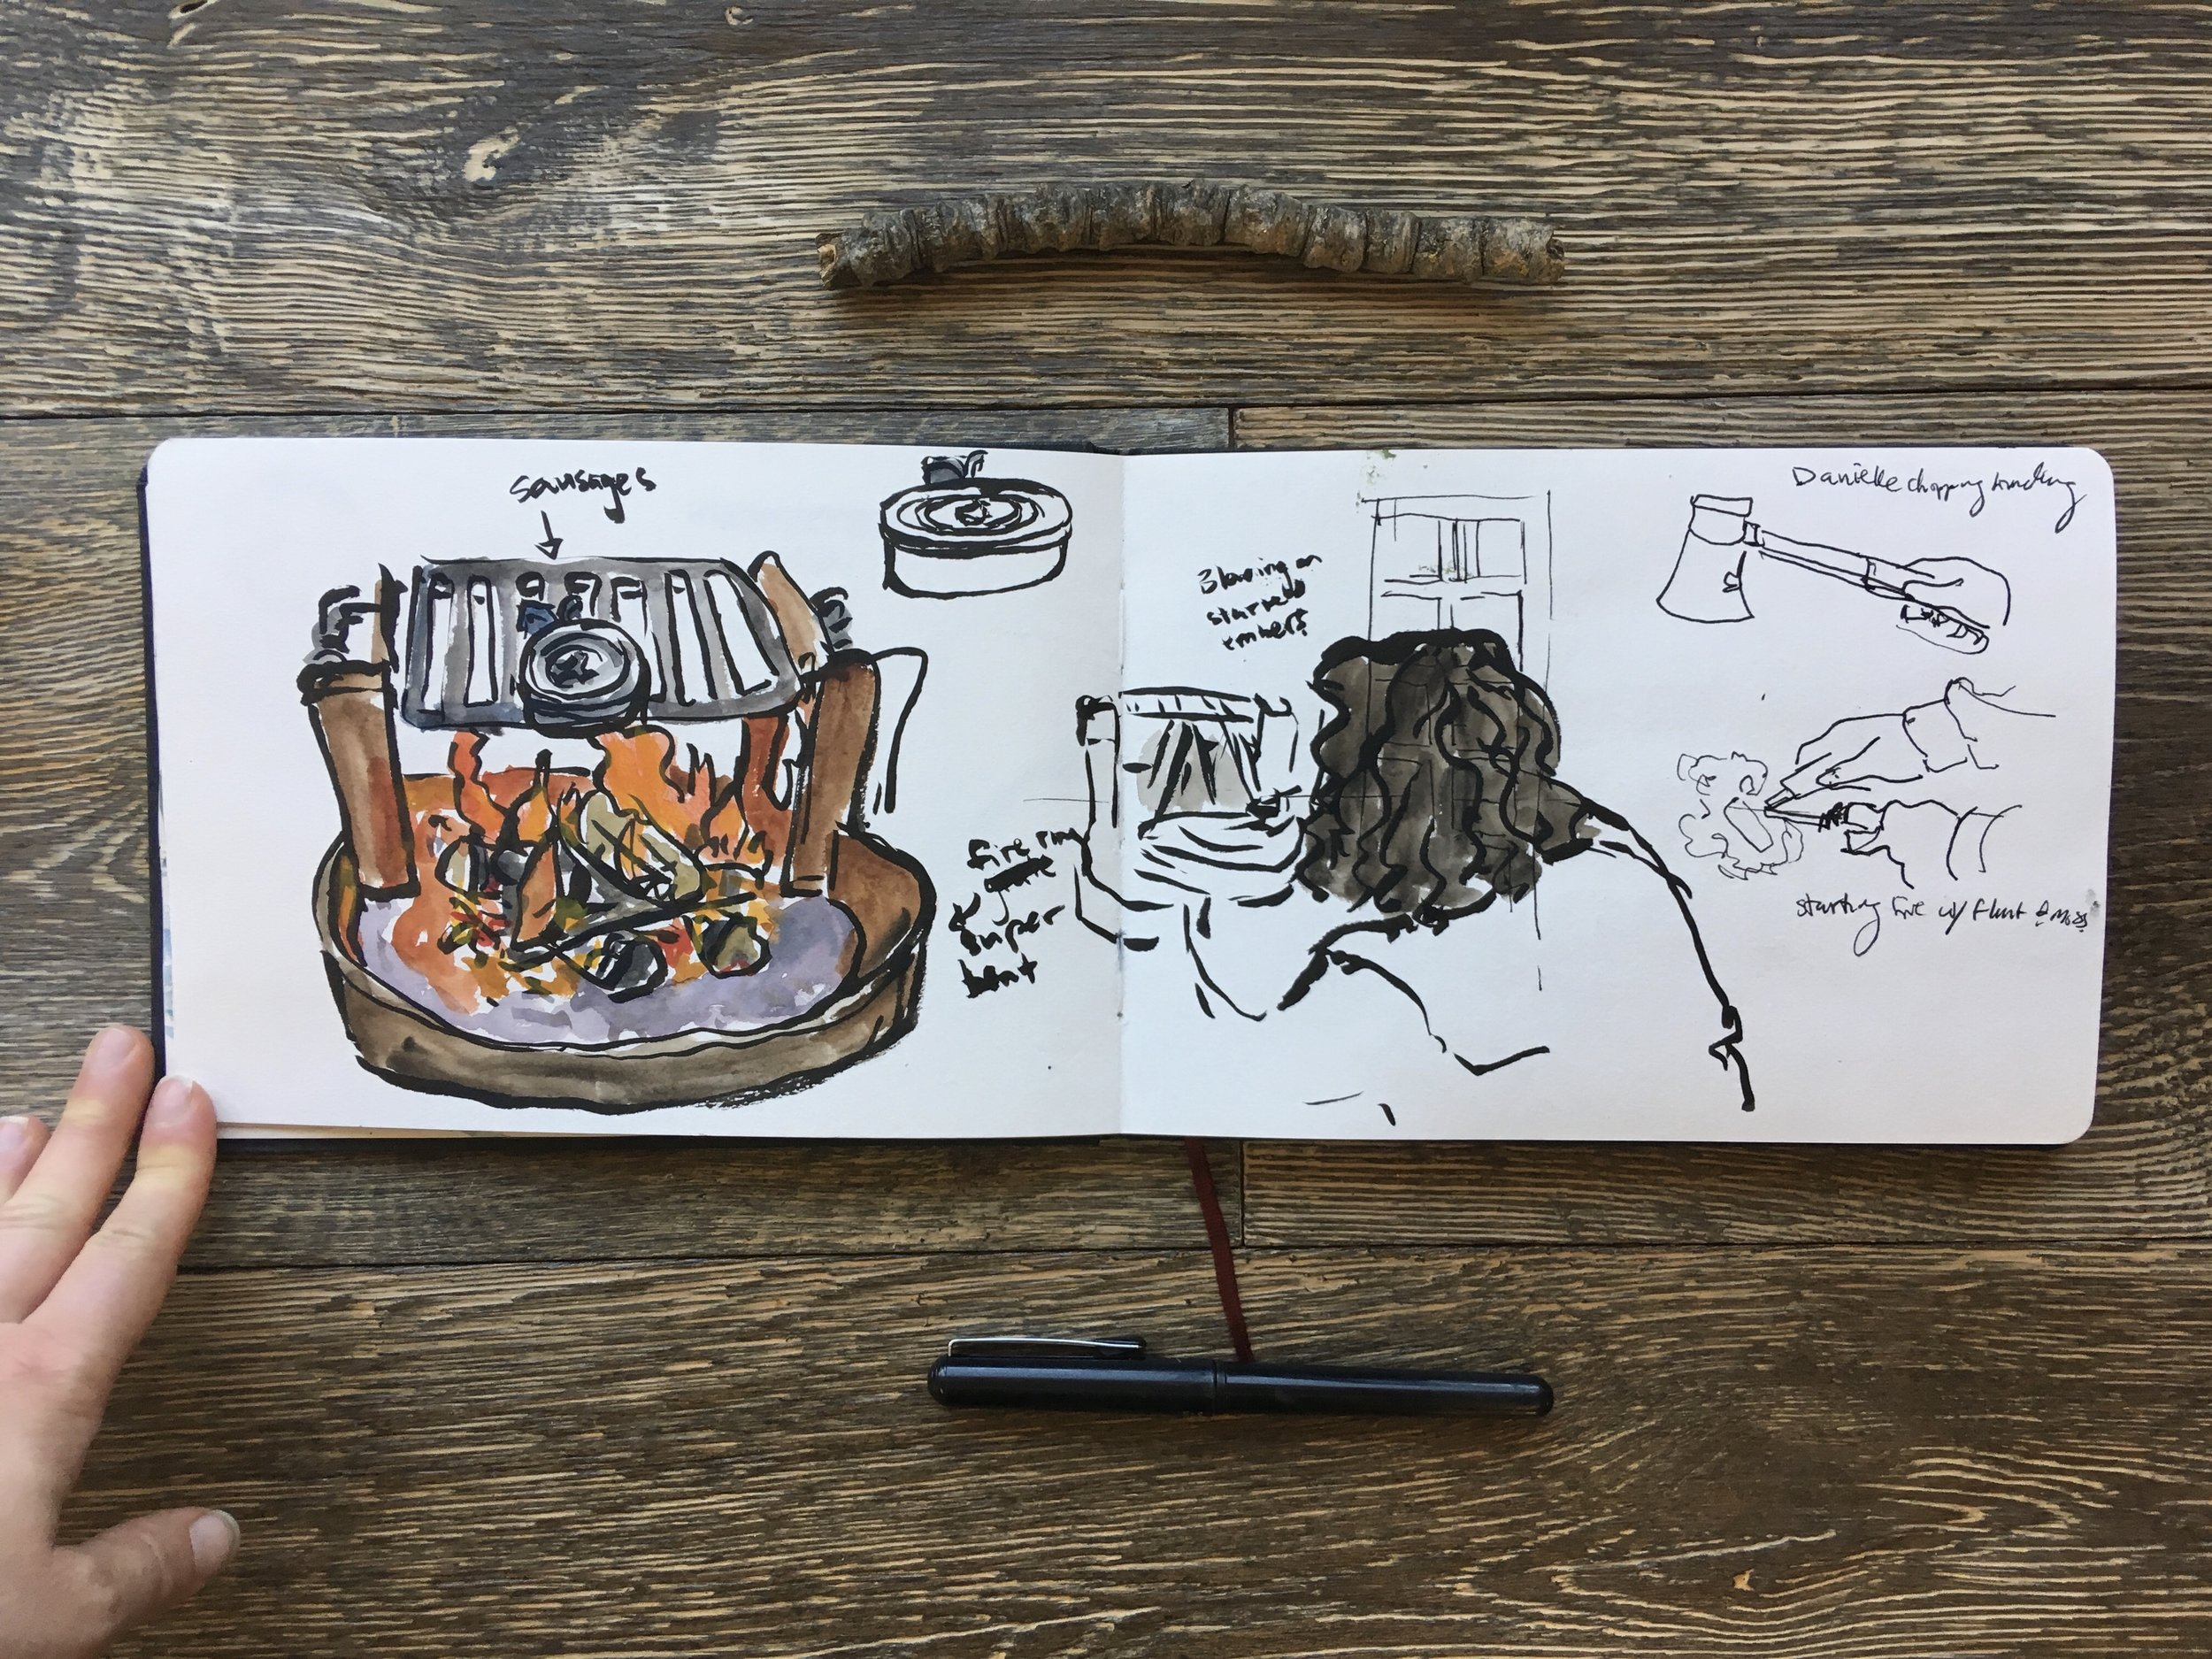 More camping adventures with Danielle doing the work and I sketch. 😄😝 I drew her progress from right to left across the pages and she started a fire with flint and tinder, split wood for smaller slivers and built the fire into something to cook our sausages on!